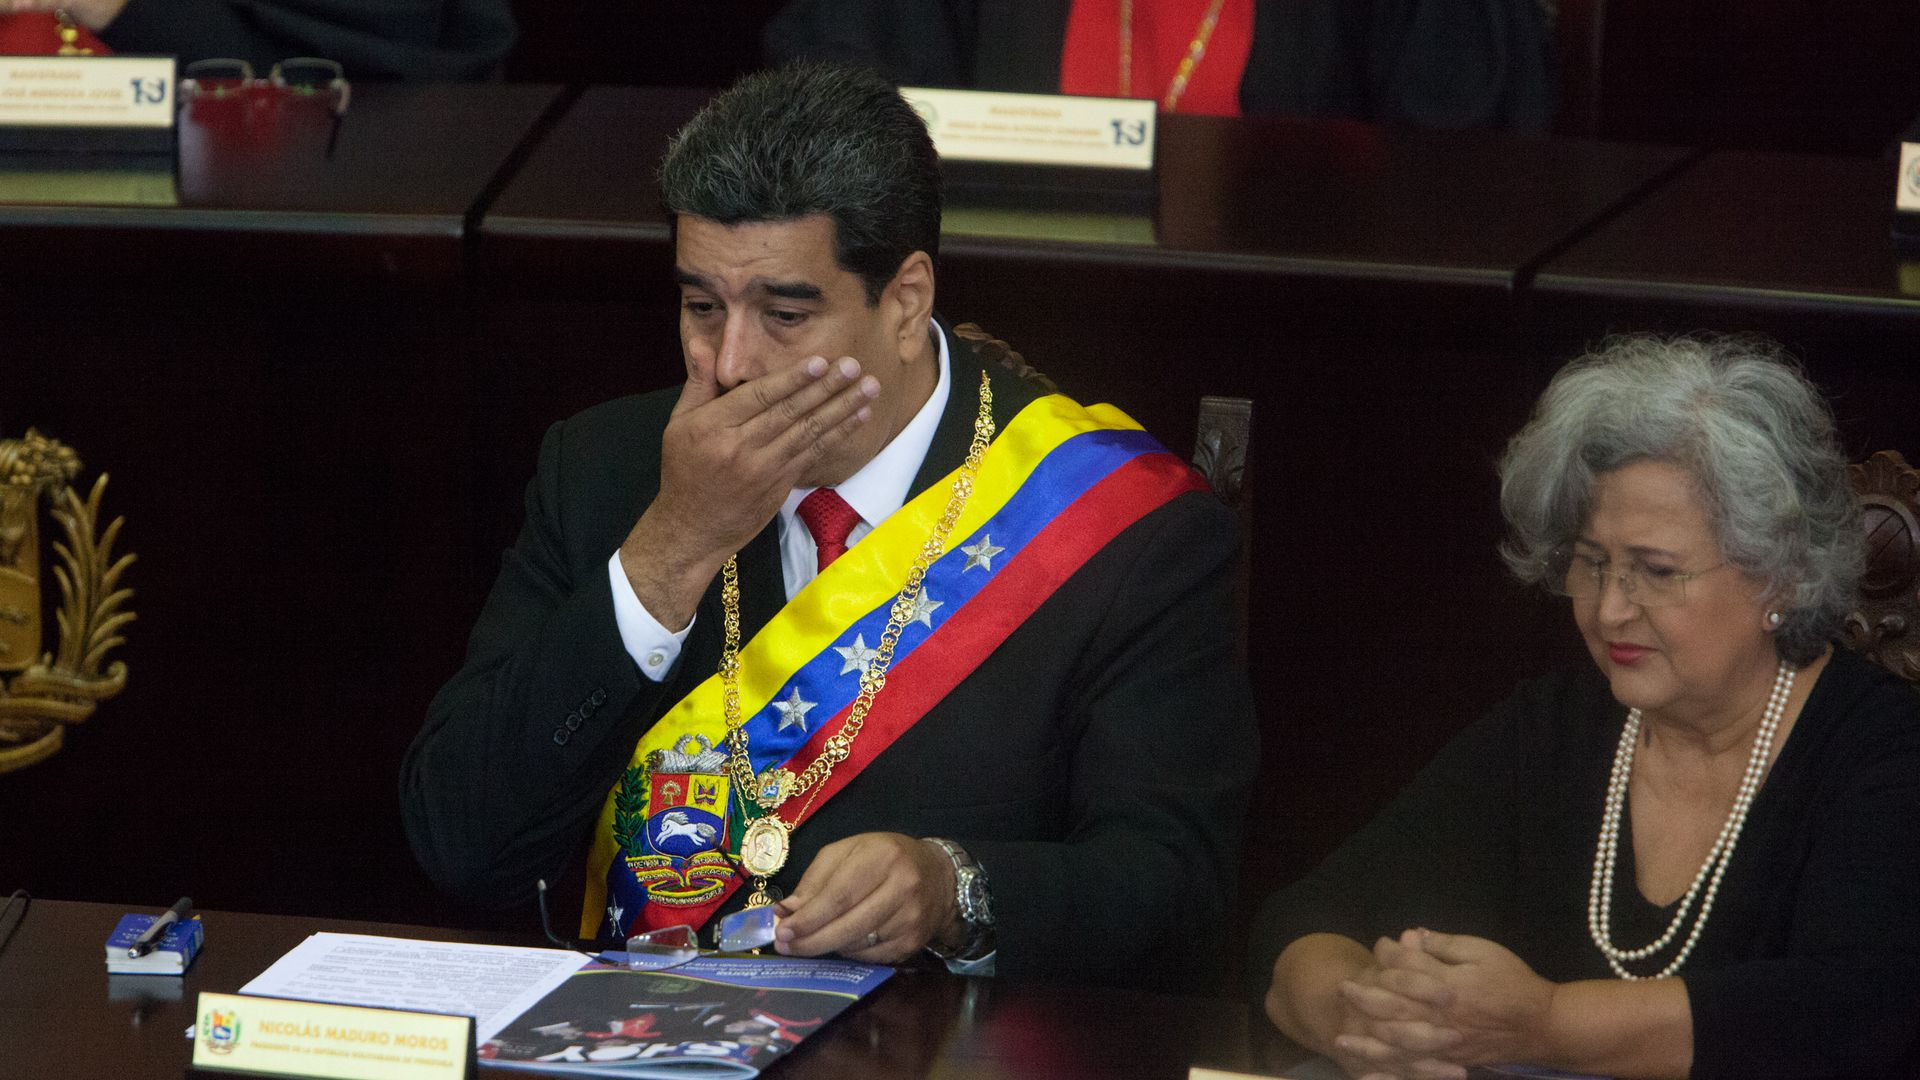 Nicolas Maduro covers his mouth and looks shocked.